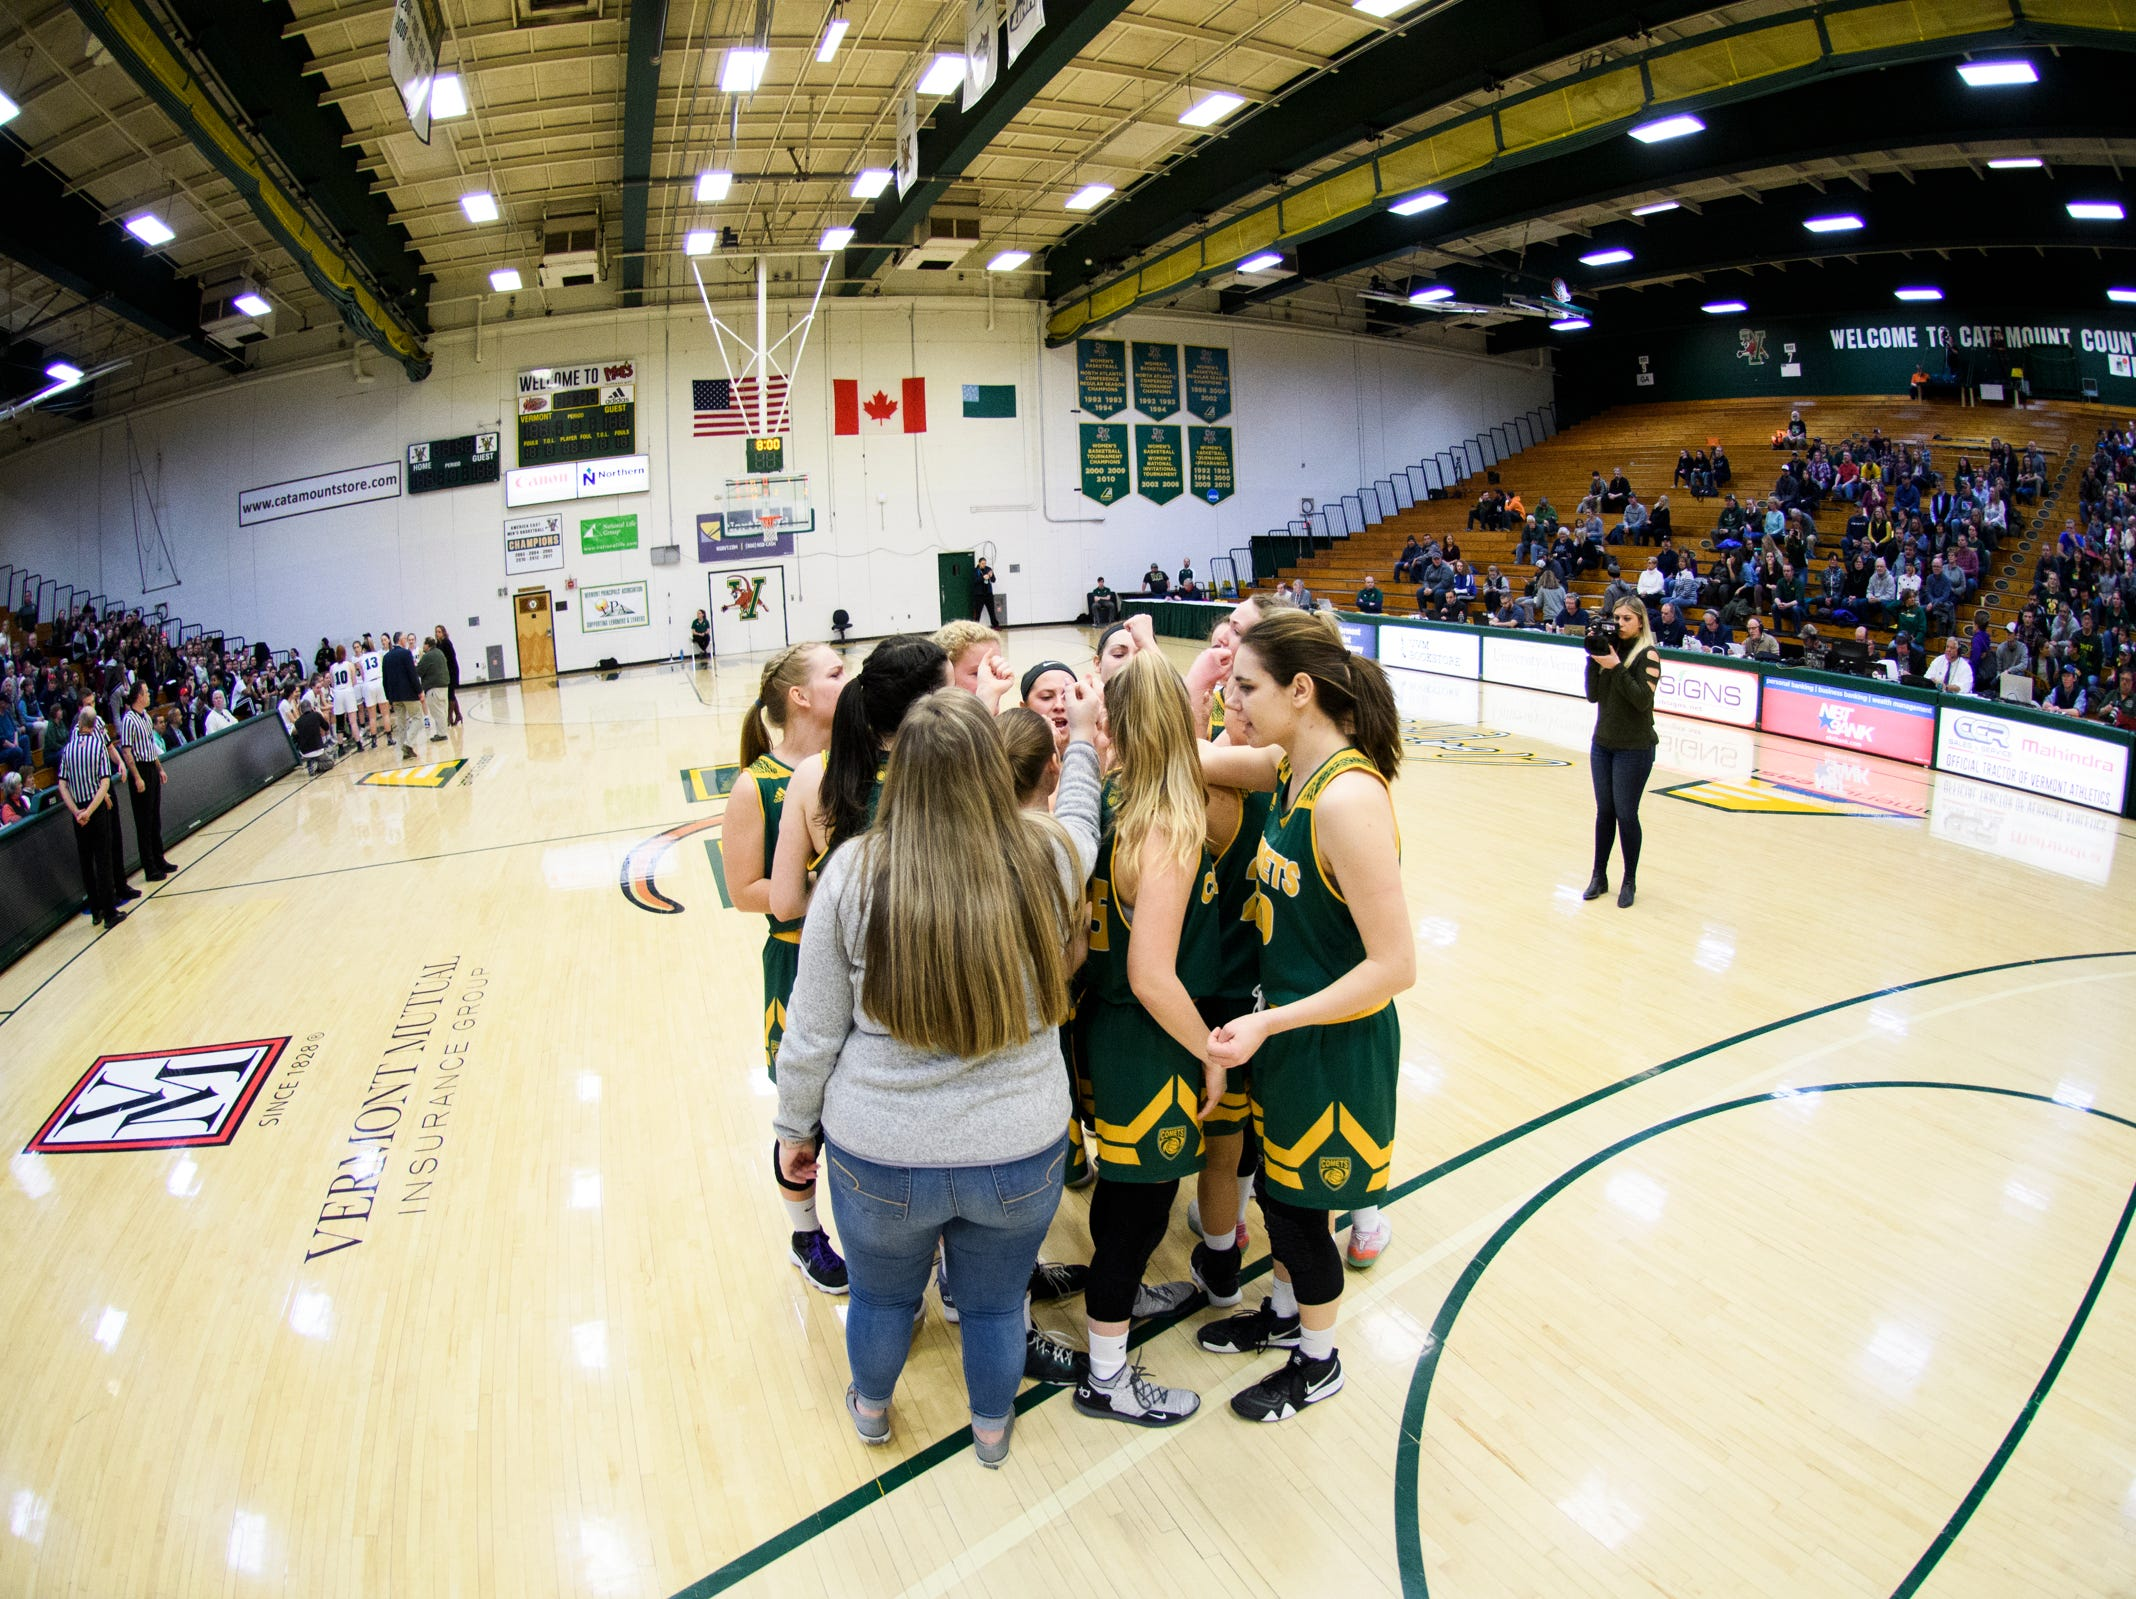 BFA huddles together during the girls semifinal basketball game between the BFA St. Albans Comets and the St. Johnsbury Hilltoppers at Patrick Gym on Wednesday night March 6, 2019 in Burlington, Vermont.